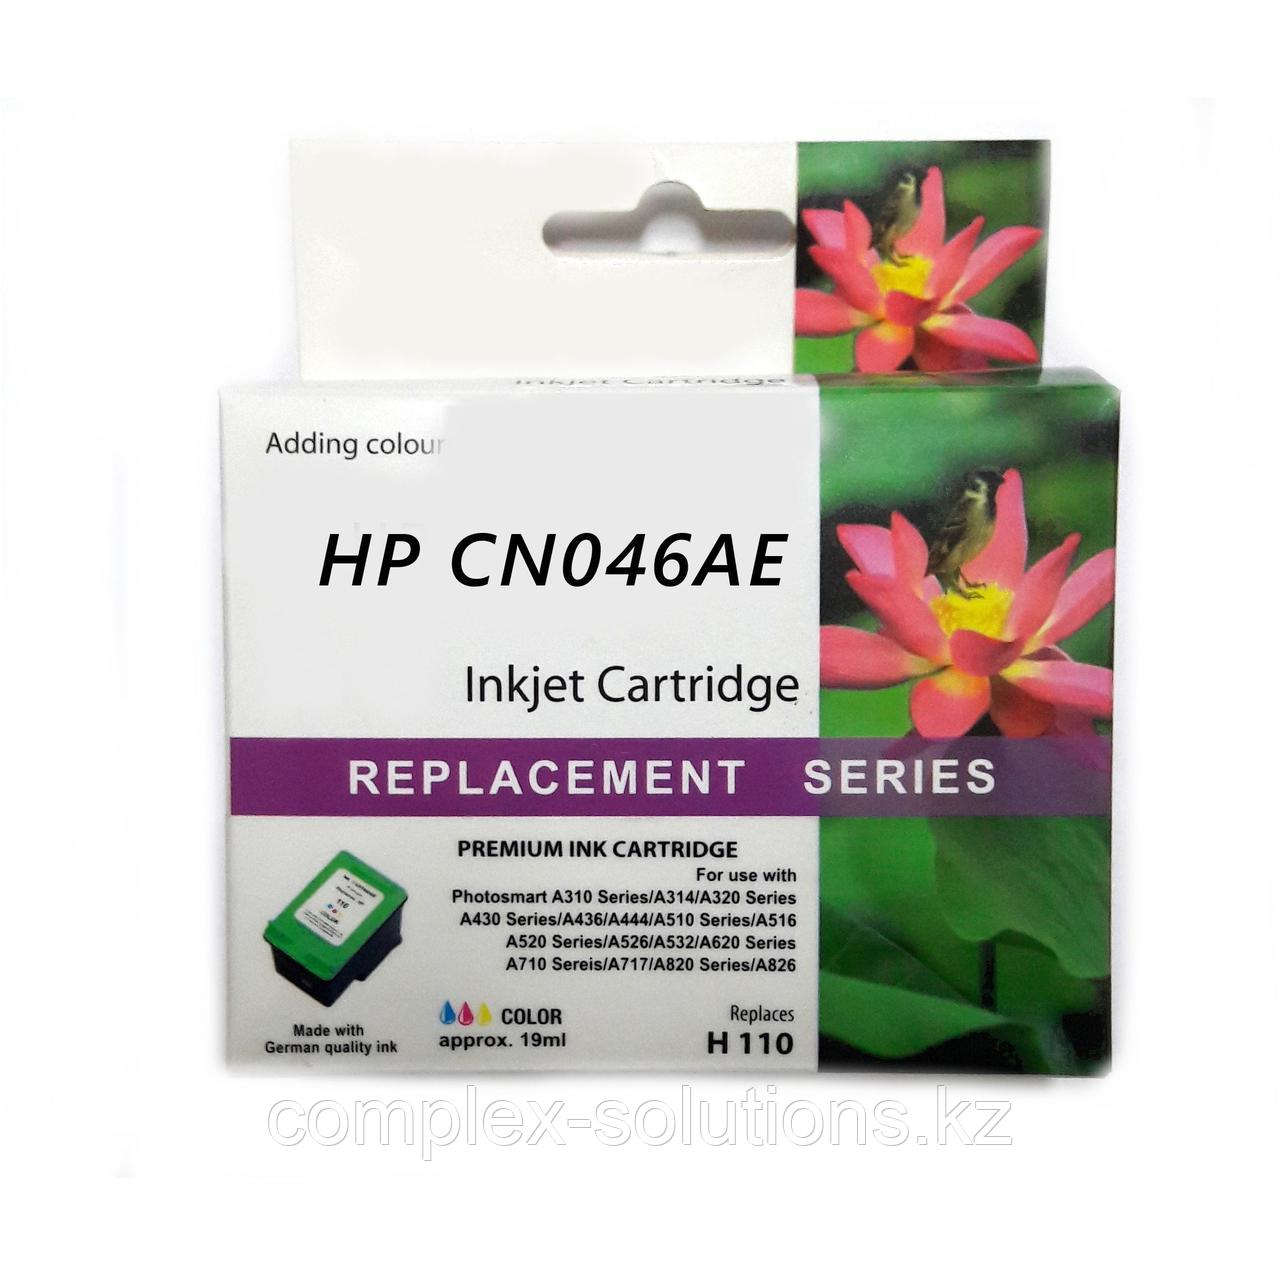 Картридж HP CN046AE Cyan Ink Cartridge №951XL, 16ml, for DJ 251 | 276 | 8100 | 8600 | 8615 | 8620 | 8625 | 8630 | 8640 | 8660 up to 1500 pages JET TEK